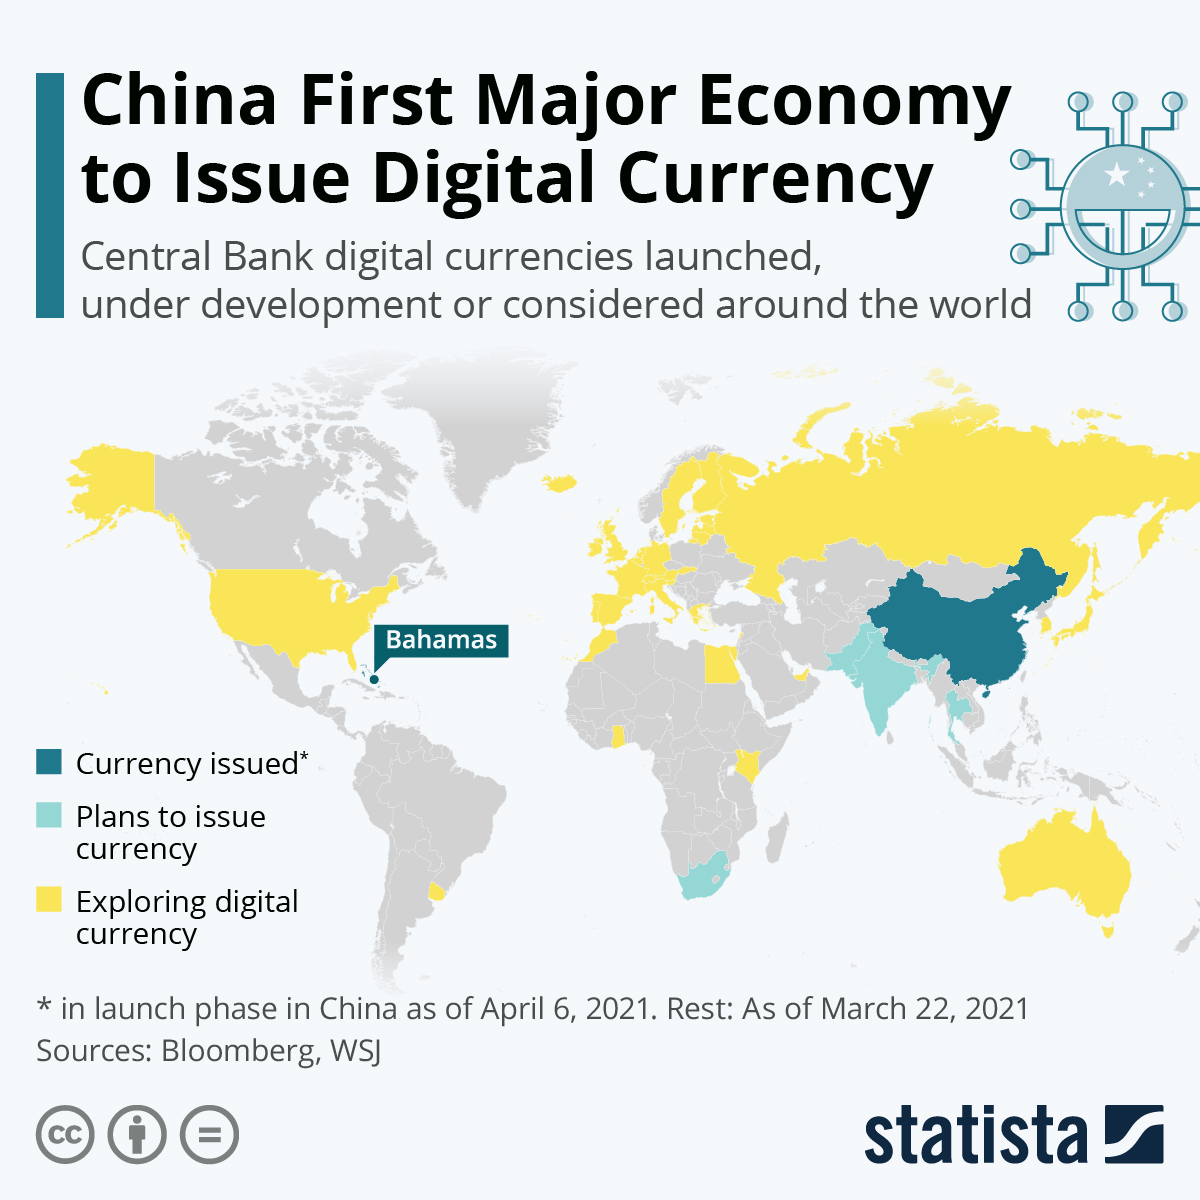 China is the first major economy to issue its own digital currency